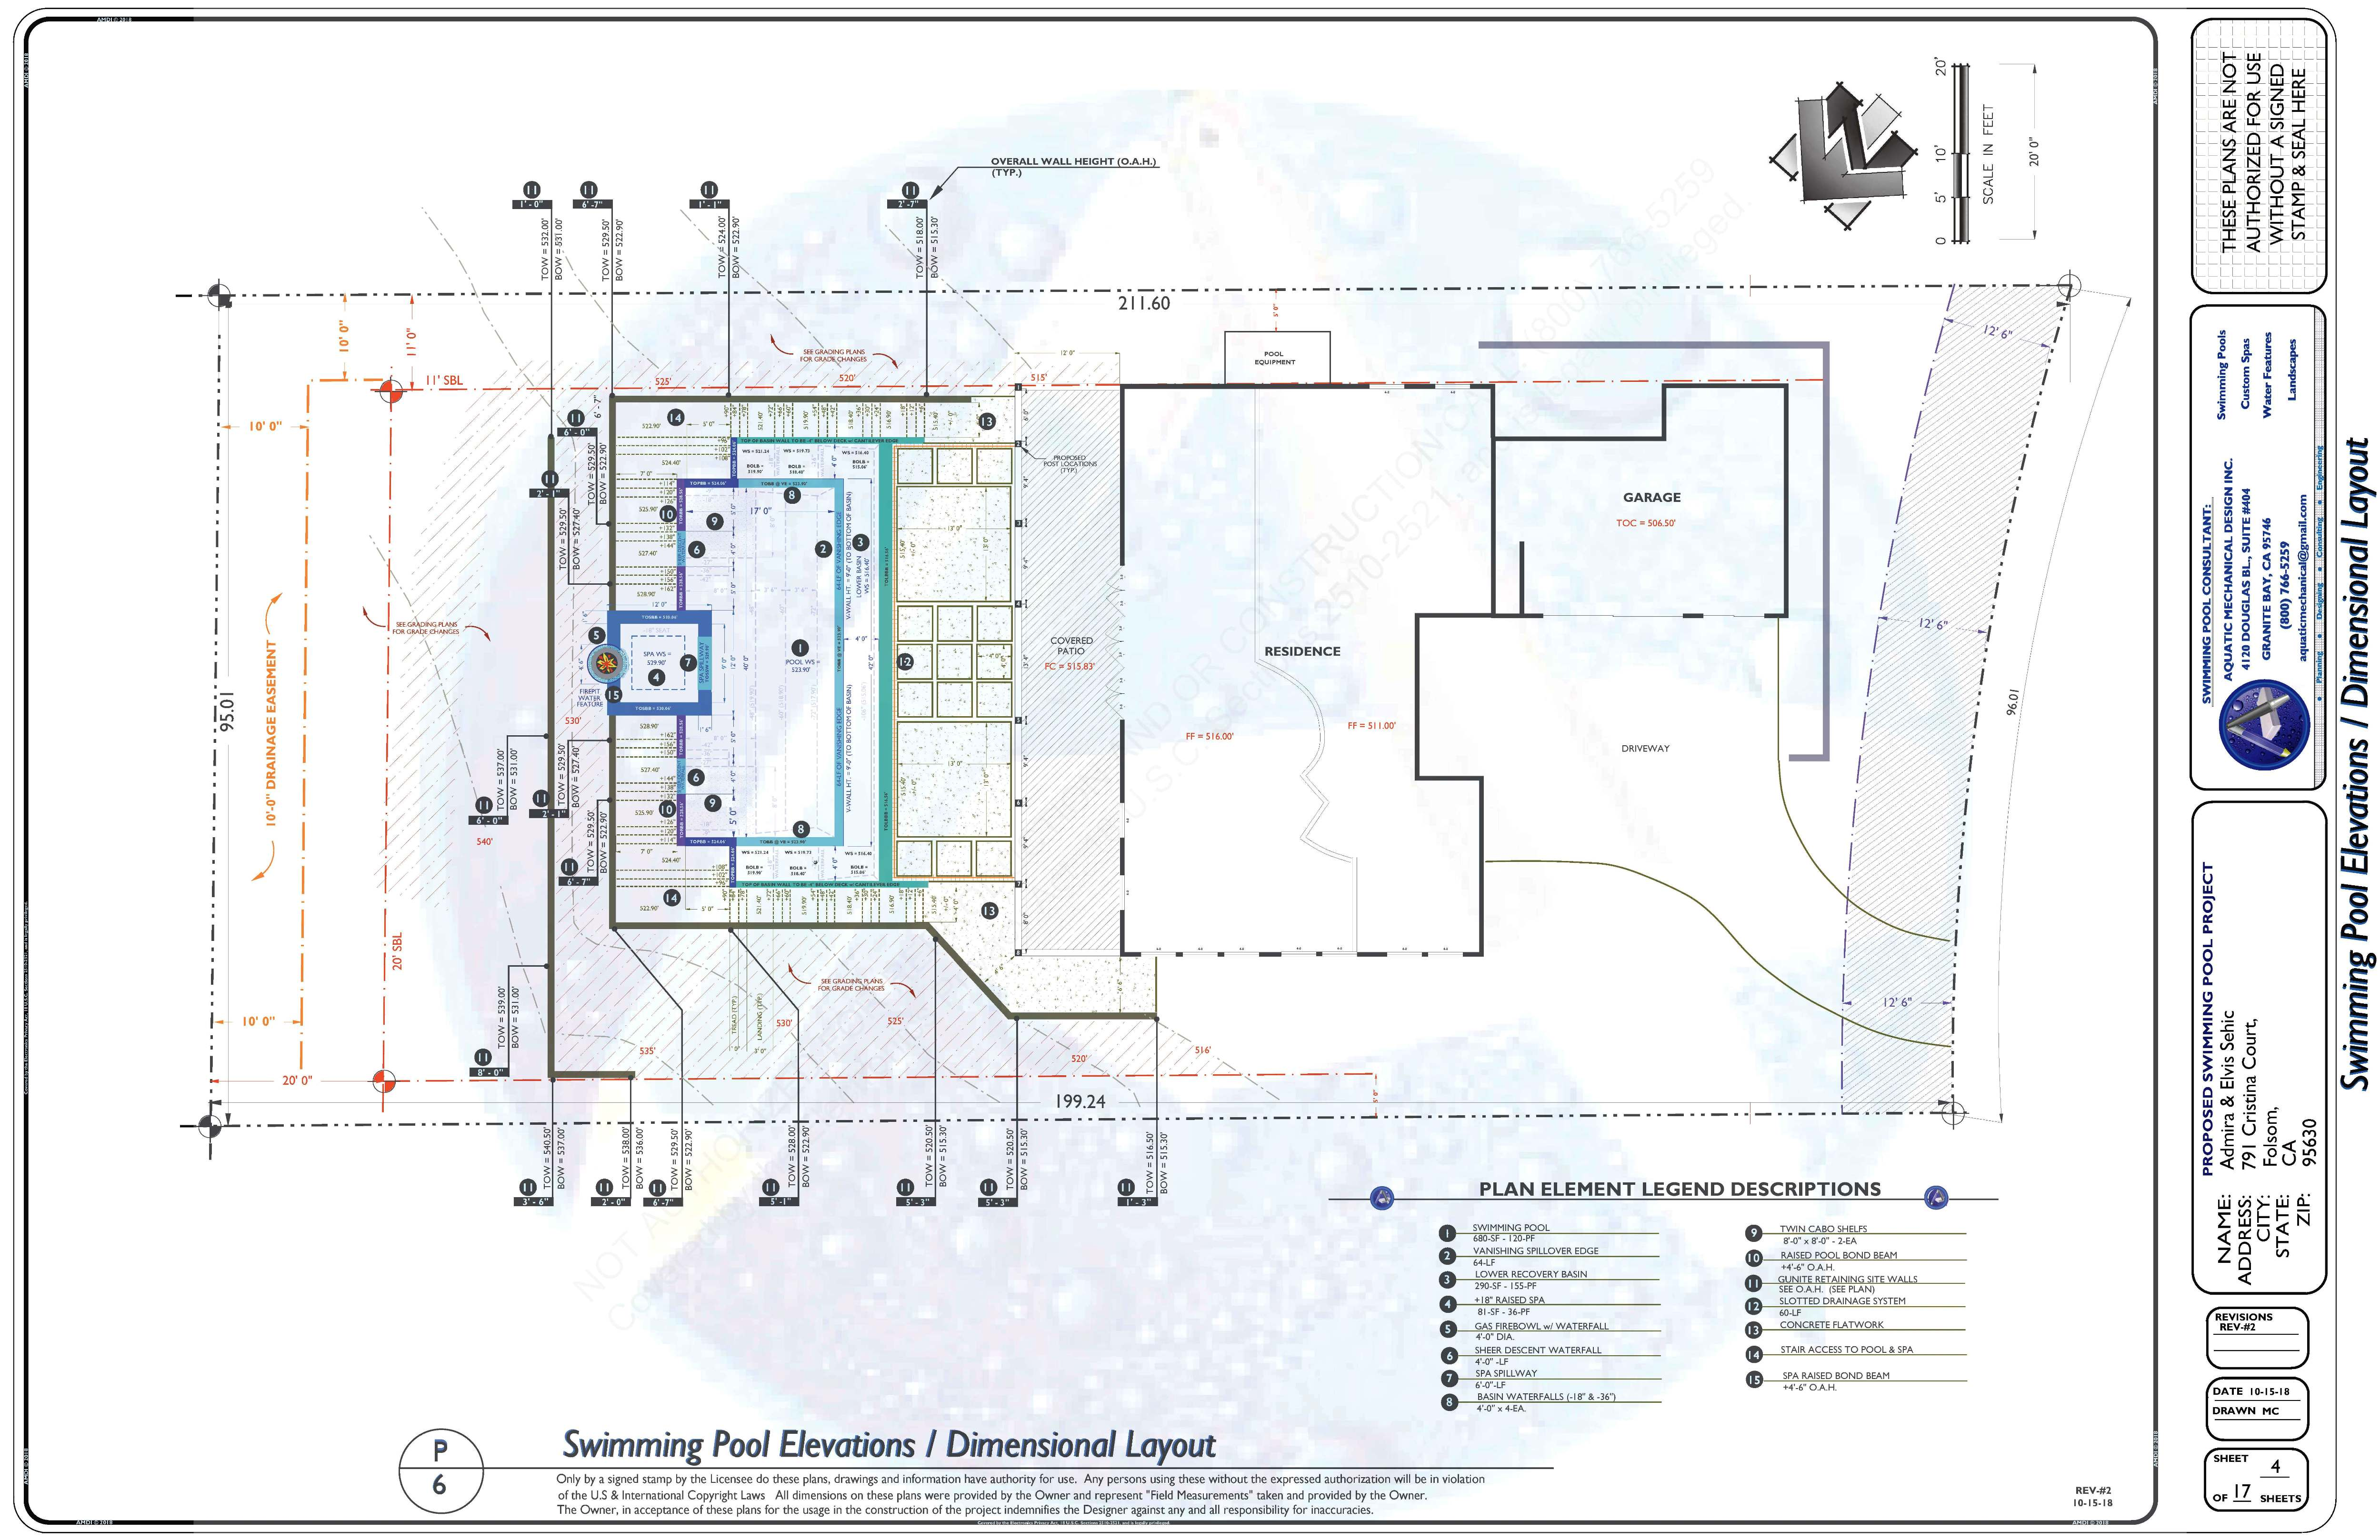 P-6 Preliminary Swimming Pool Elevations / Dimensional Layout